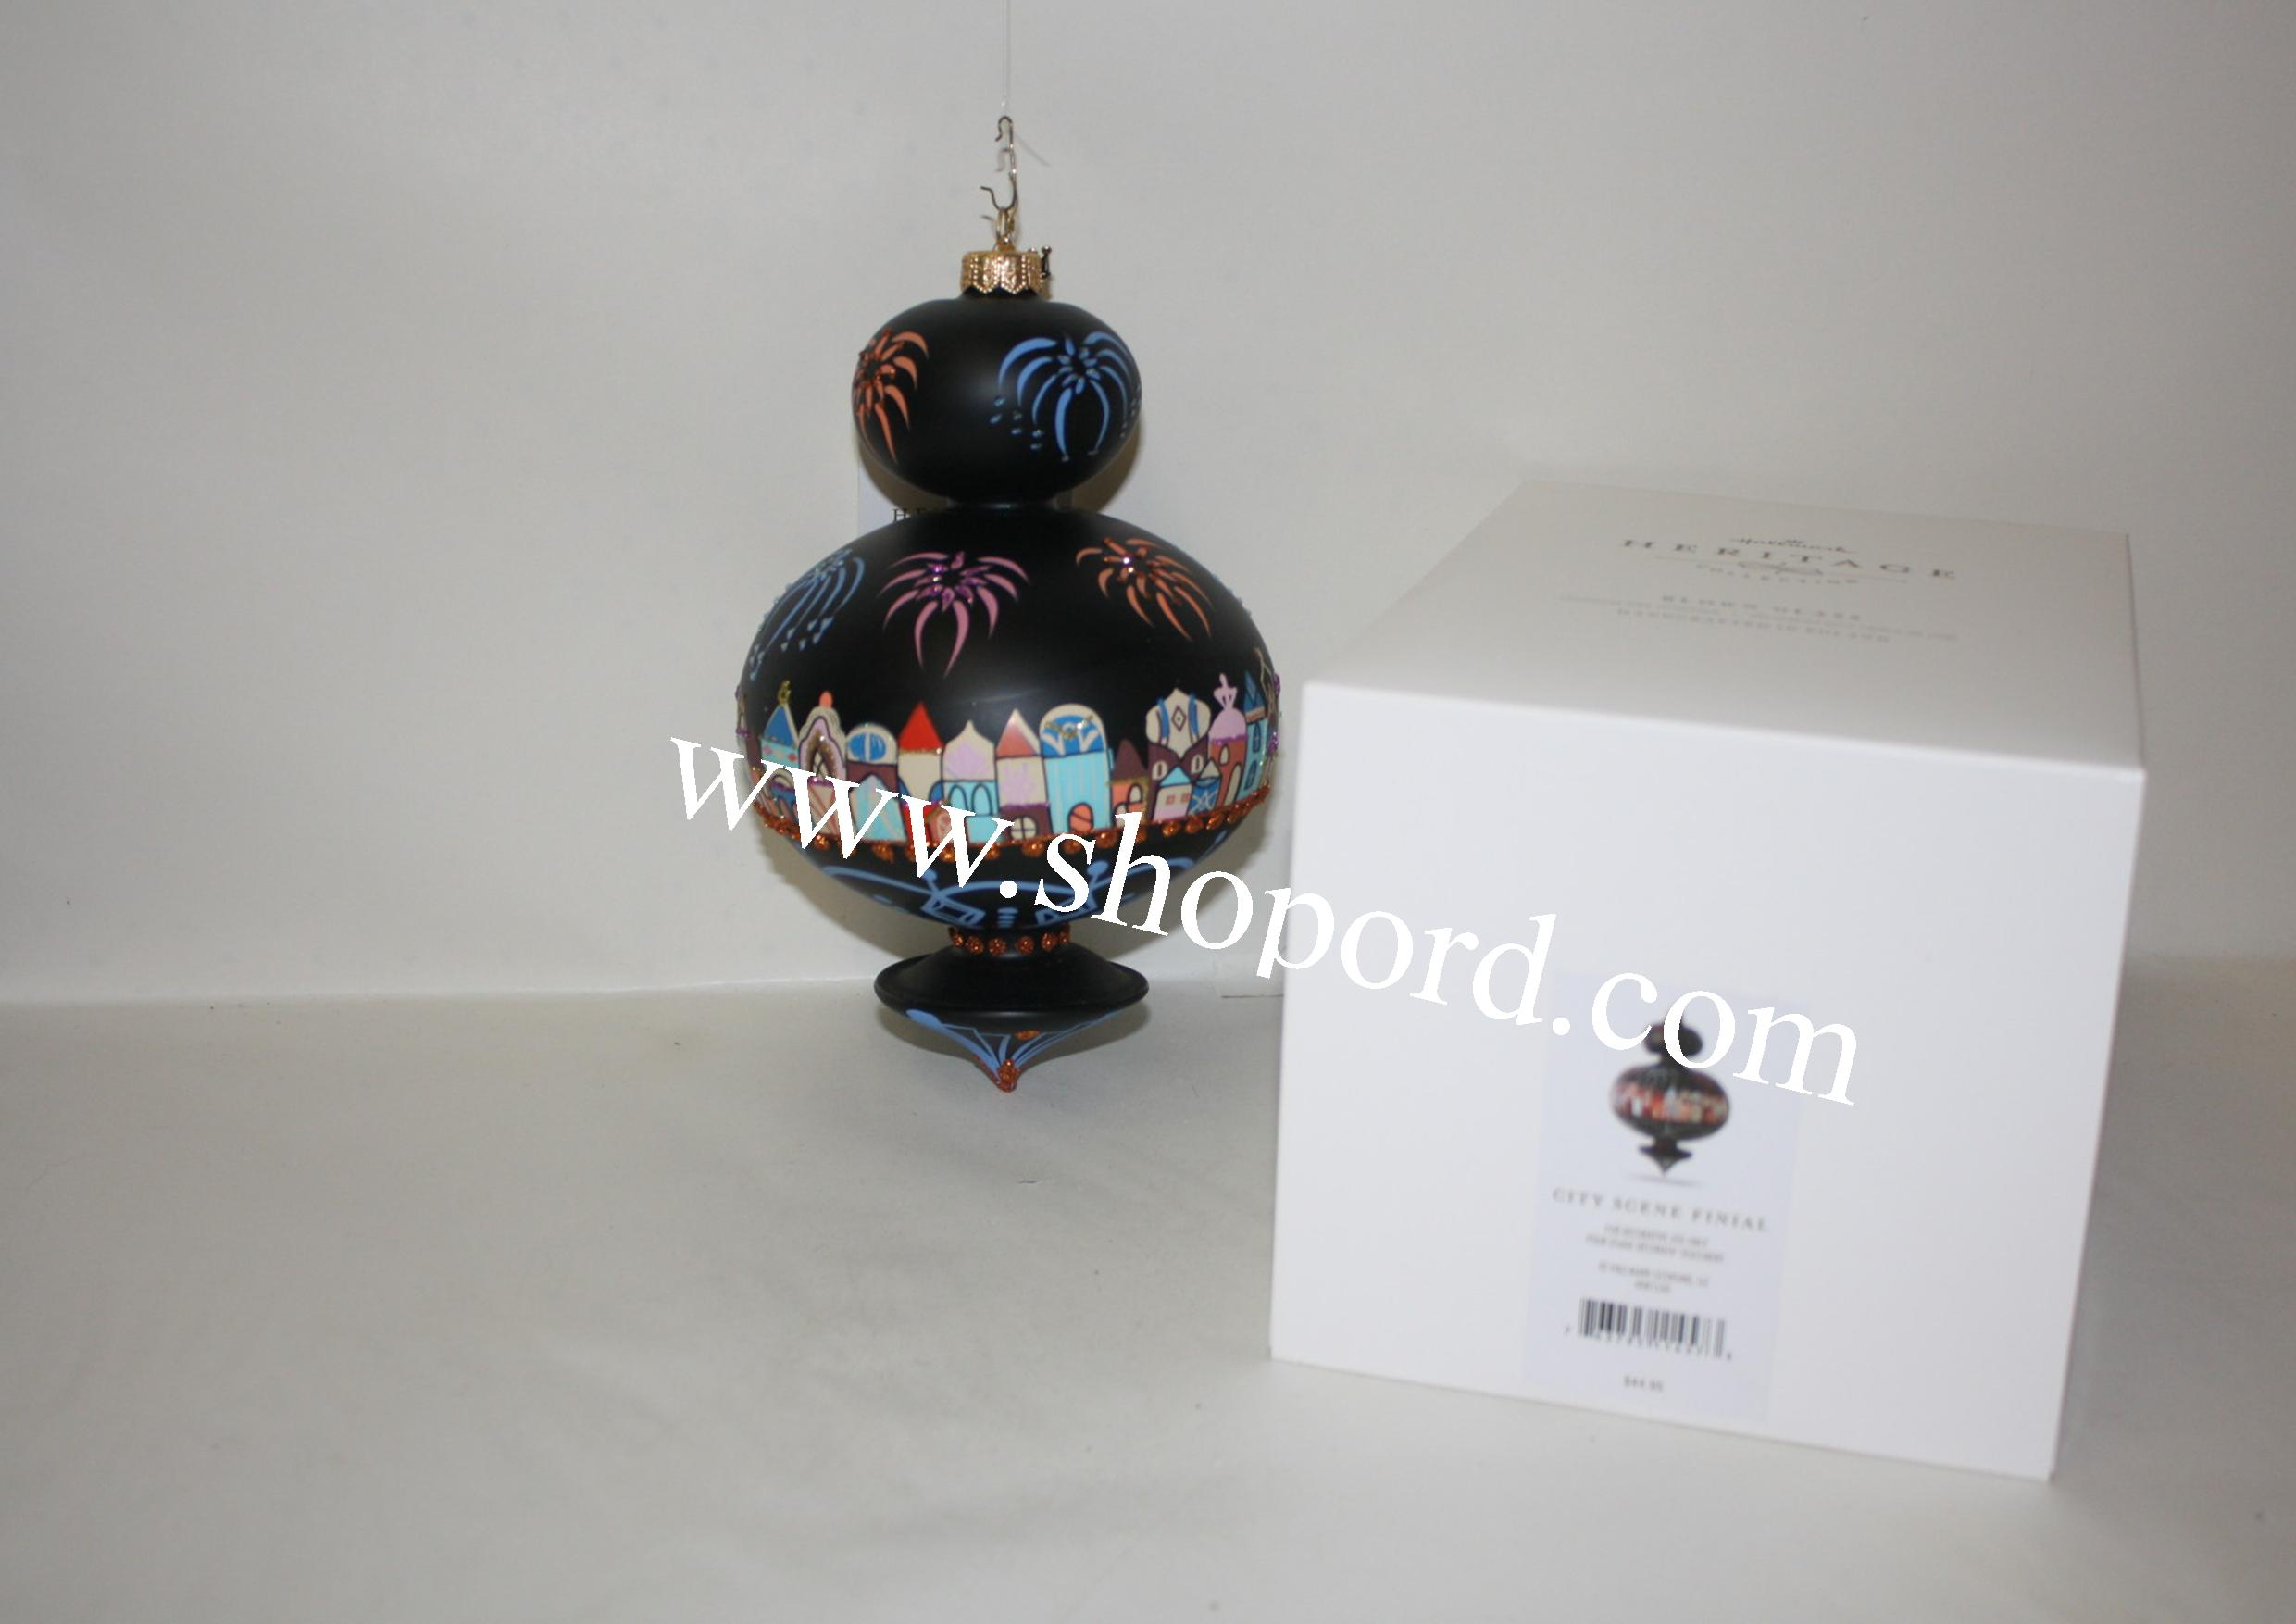 Hallmark 2016 City Scene Finial New Years Eve Heritage Collection Ornament HDR1530 Damaged Box